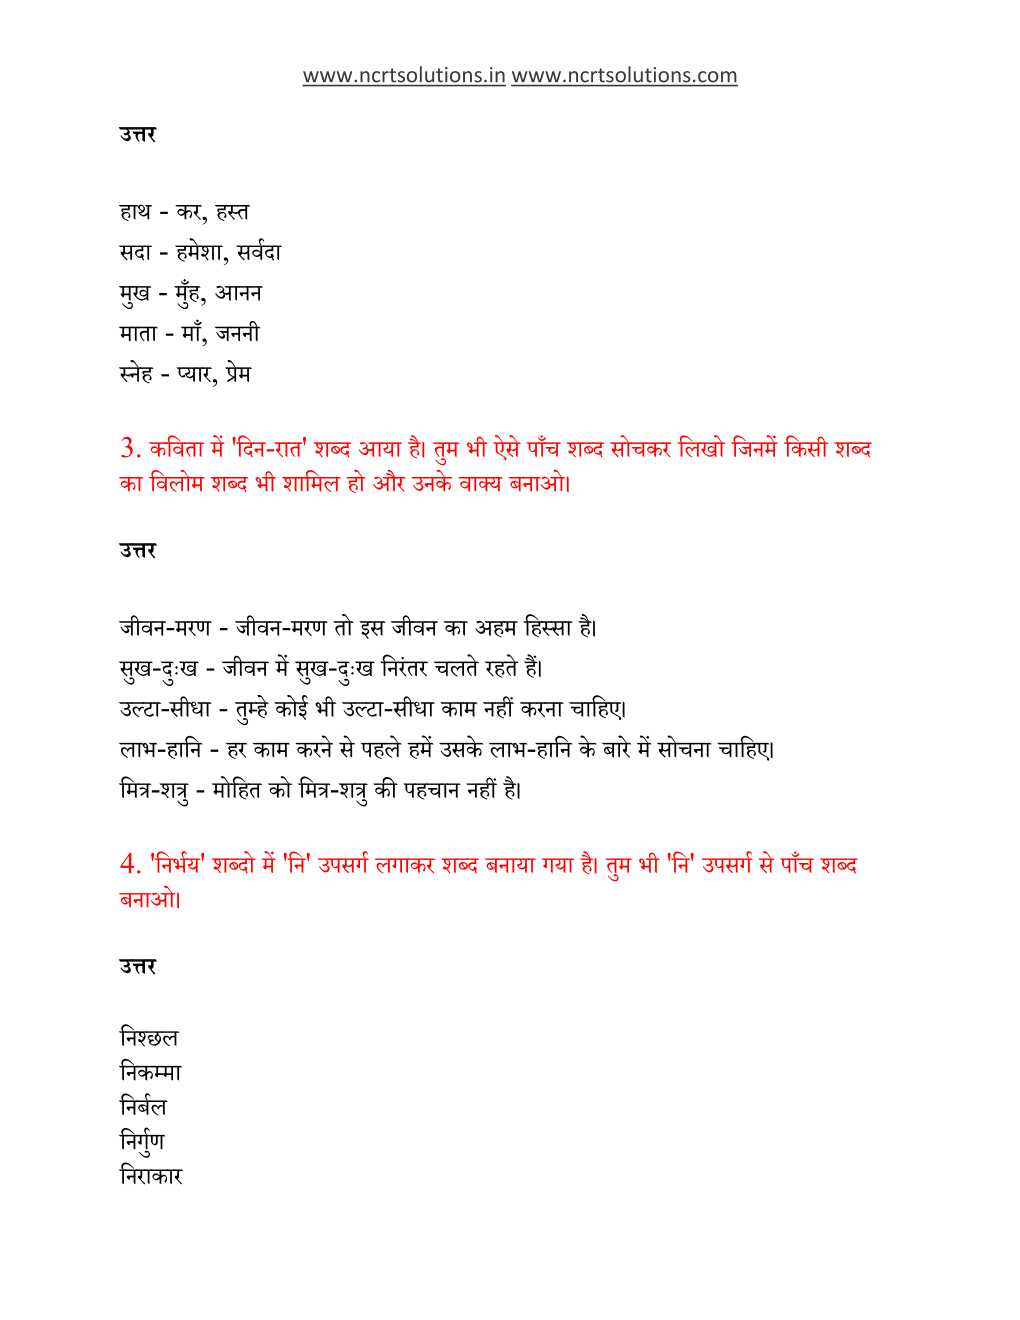 NCERT Solutions For Class 6 Hindi Vasant Chapter 13